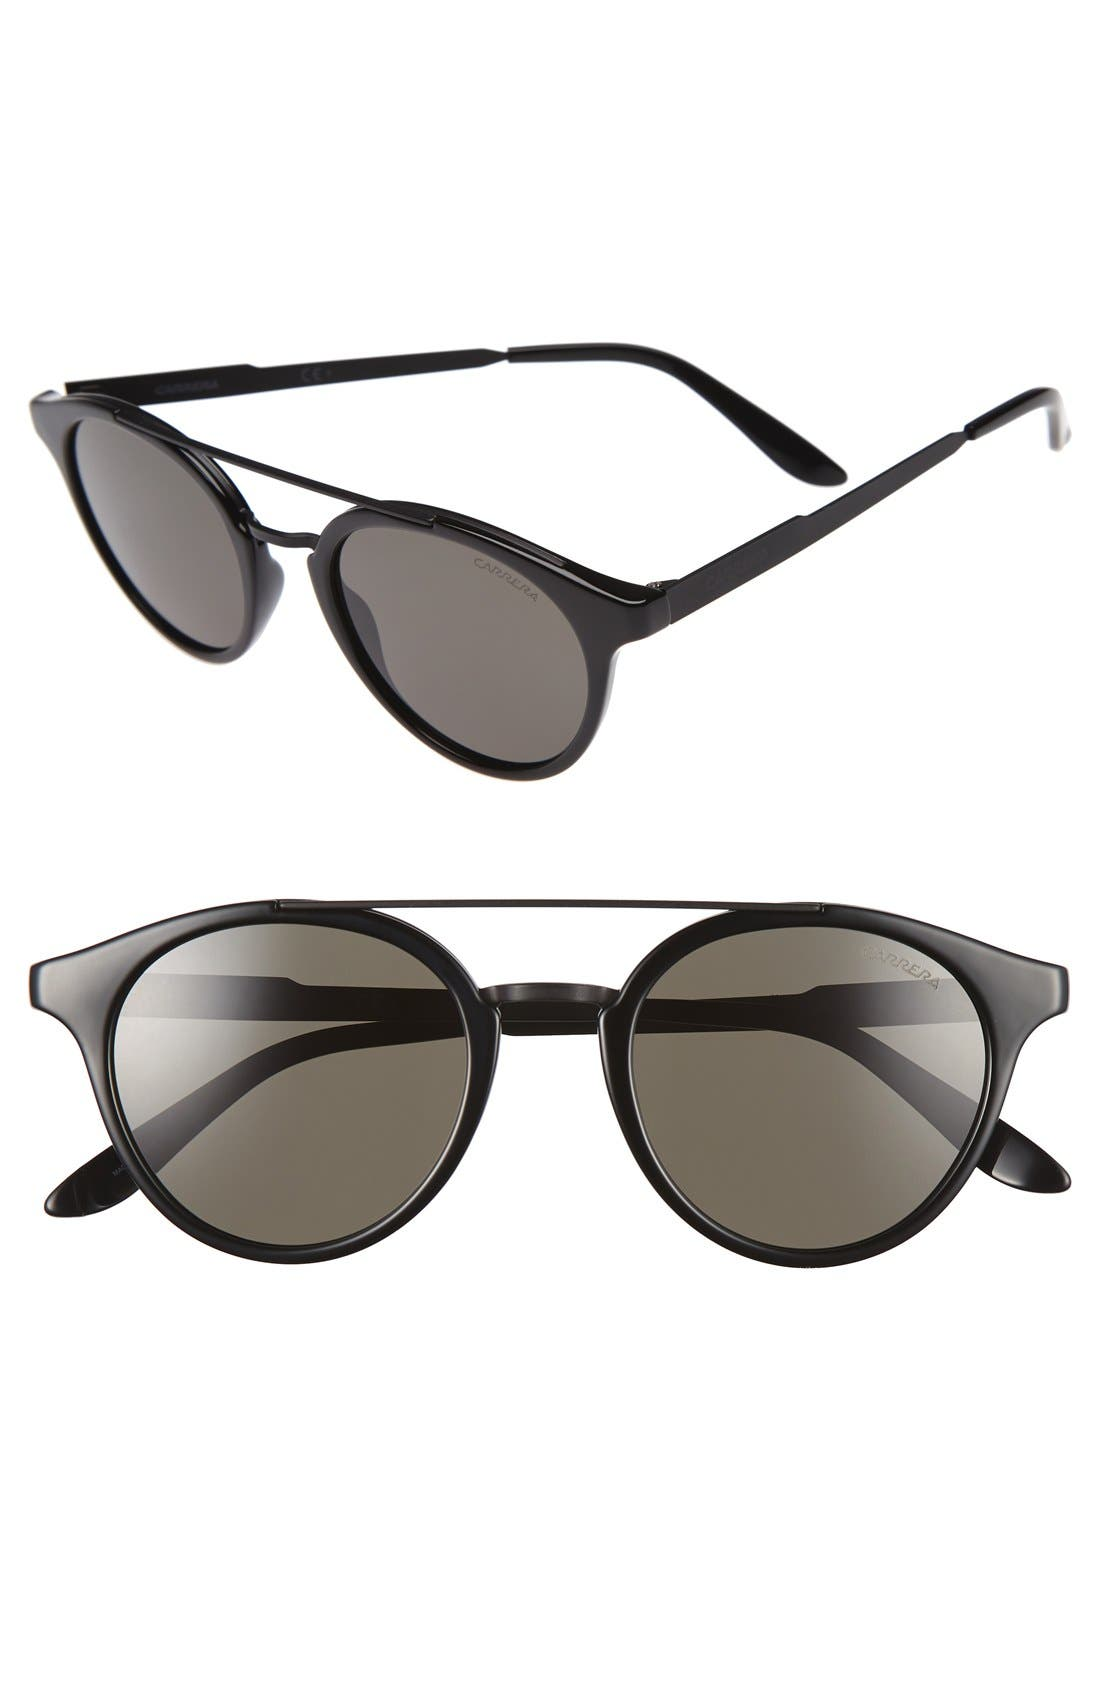 CARRERA EYEWEAR 49mm Retro Sunglasses